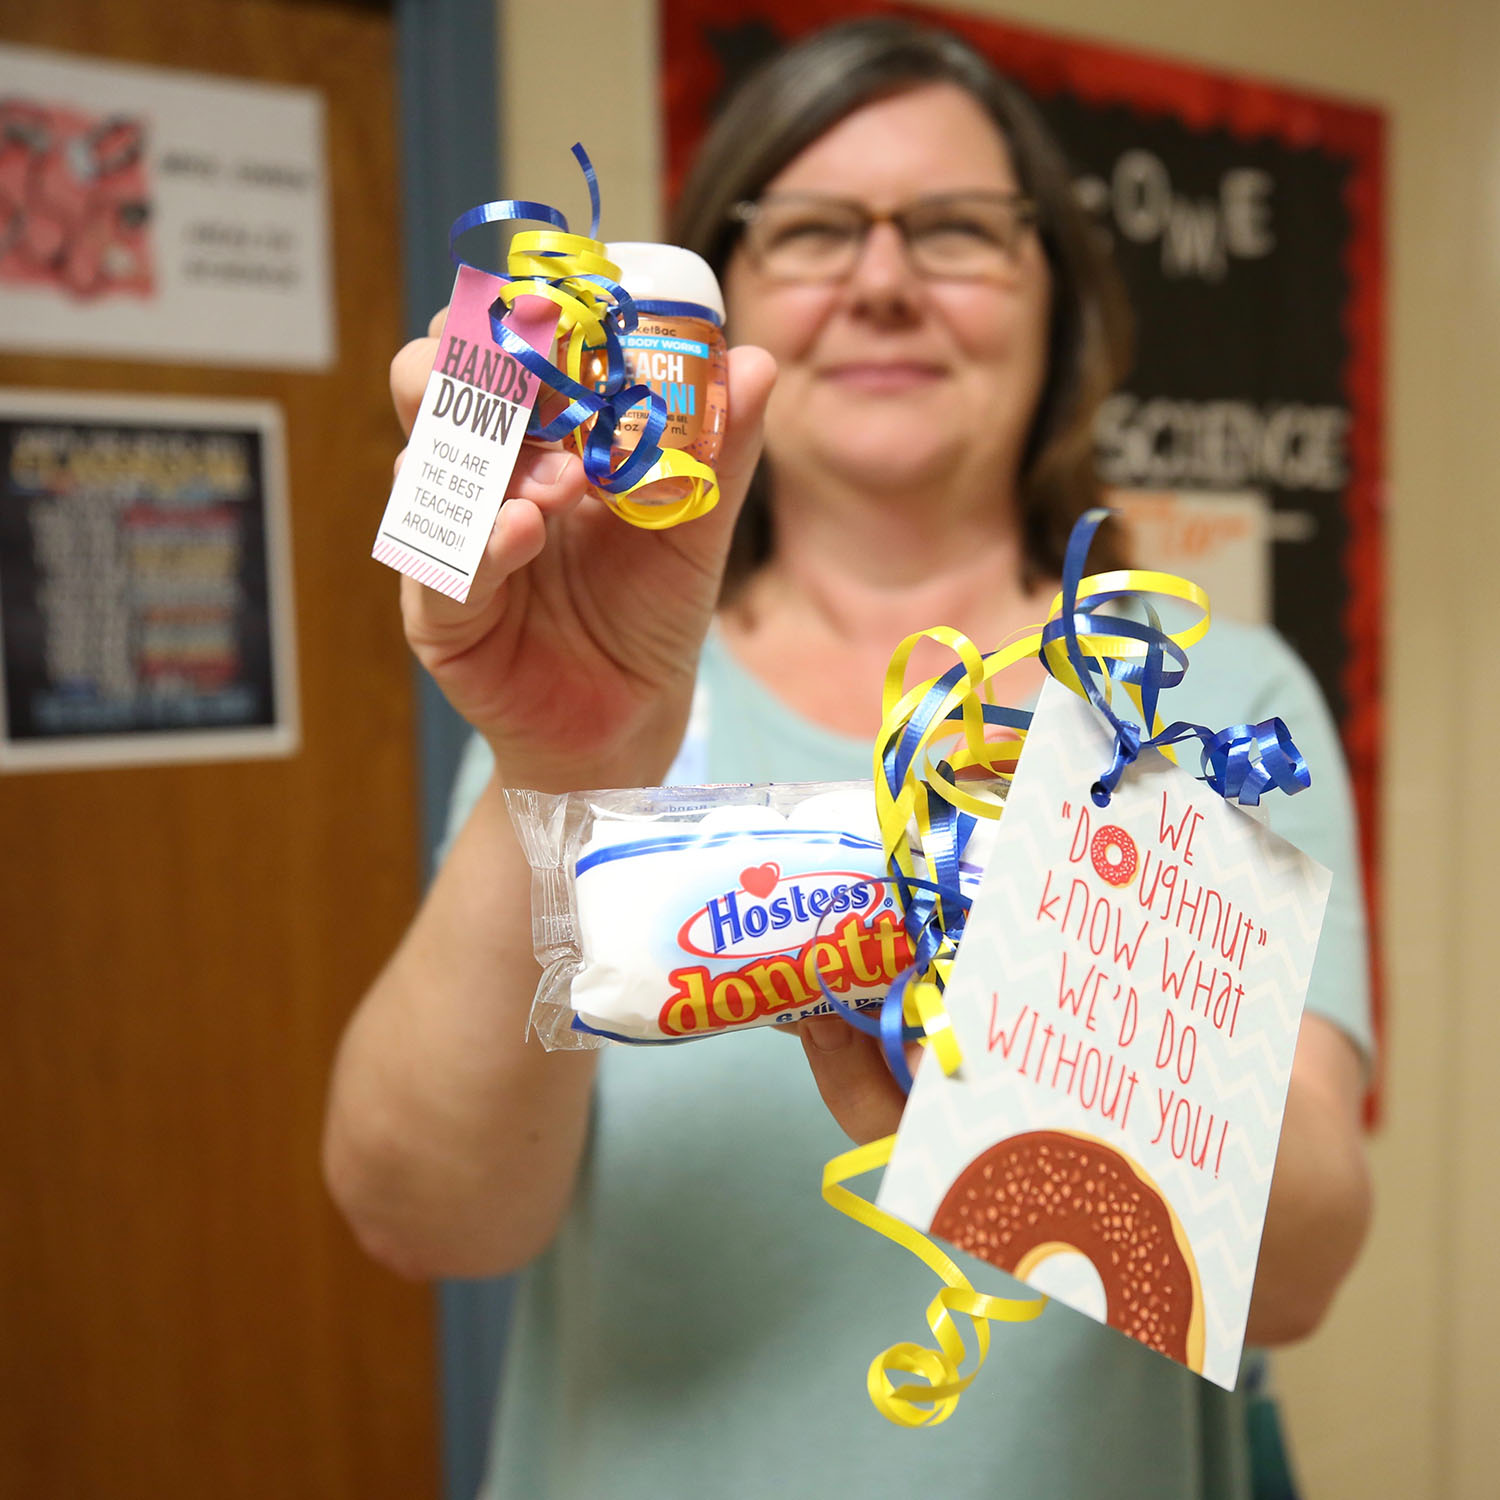 Career Tech teacher poses with gifts.